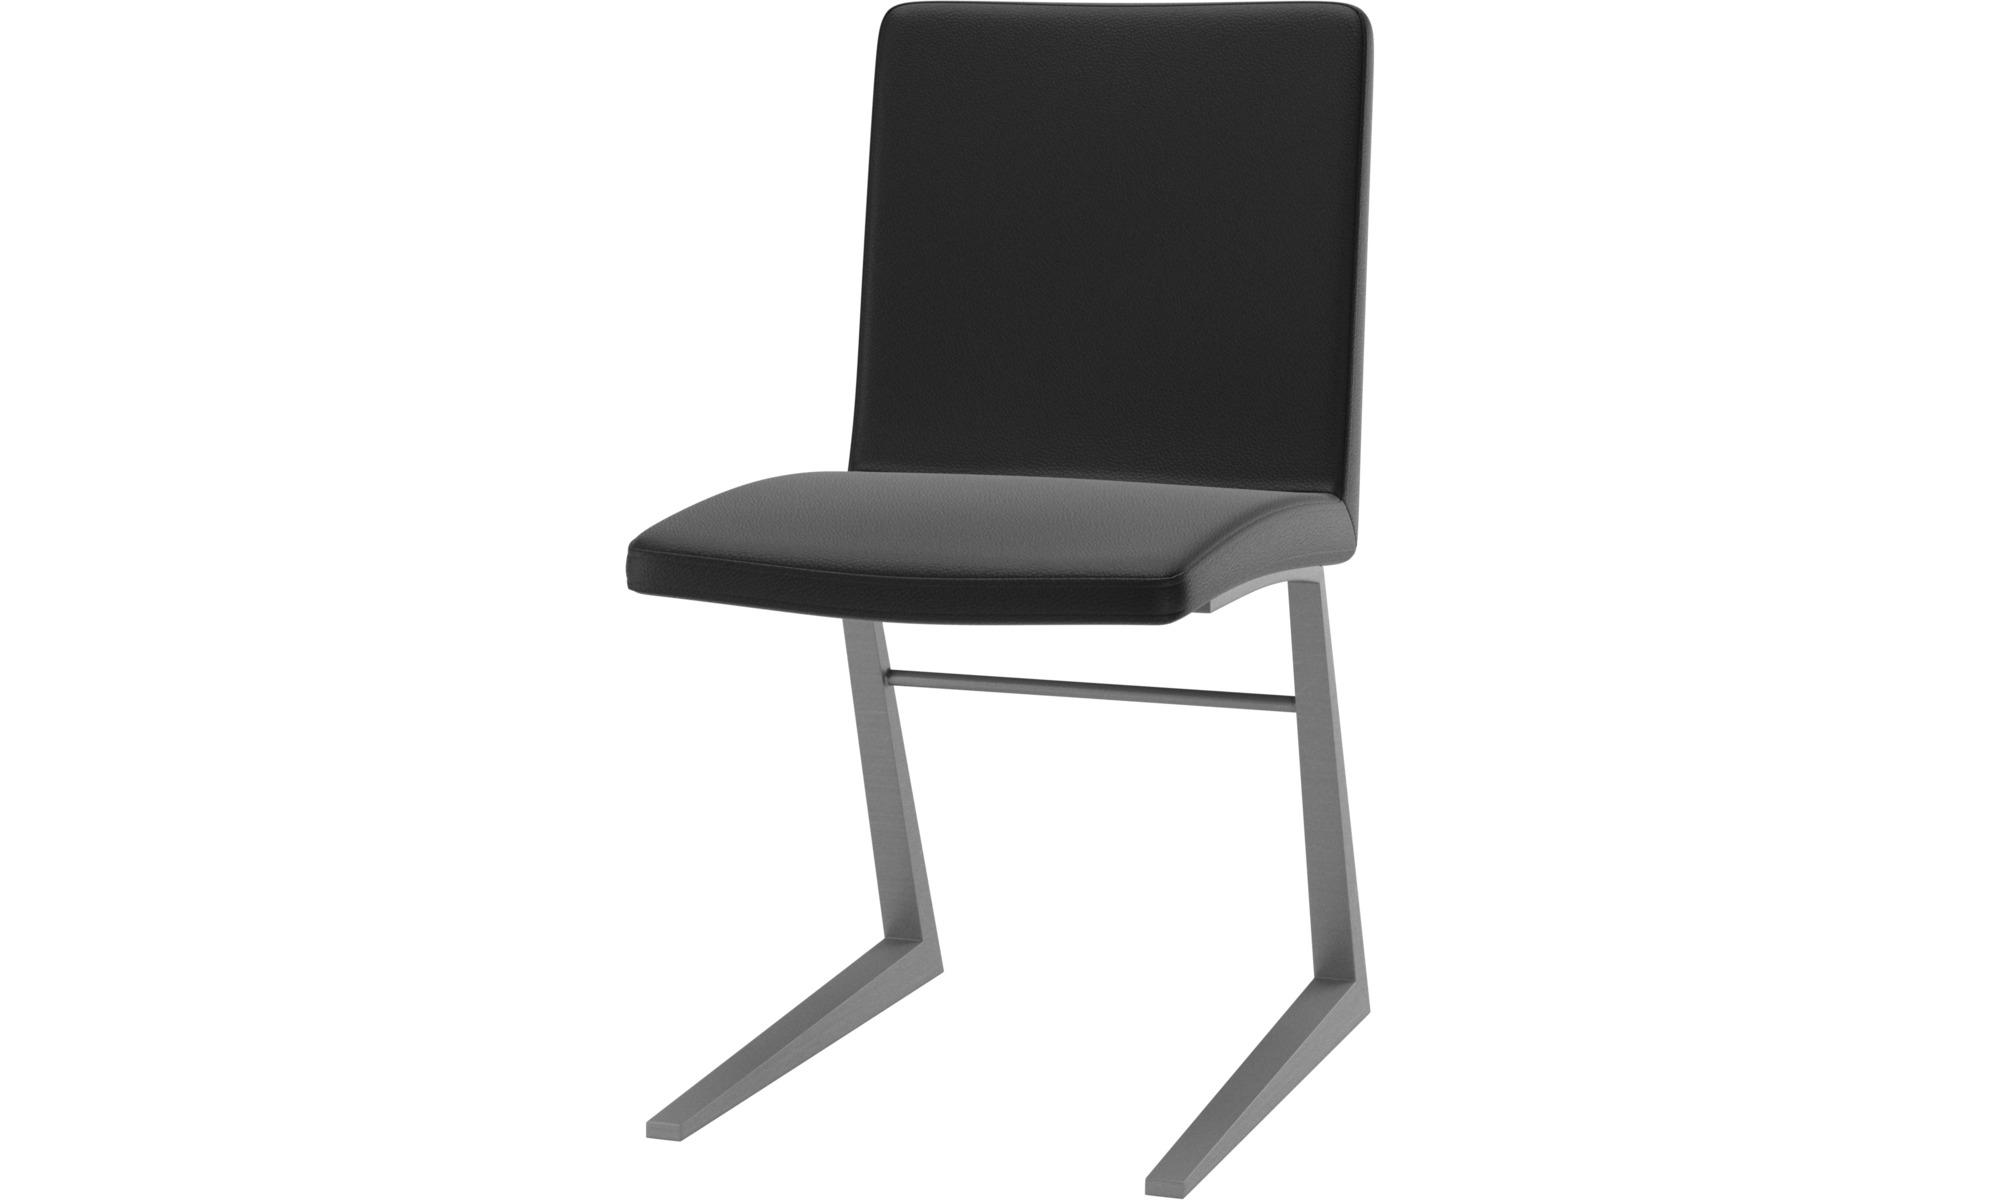 Dining chairs - Mariposa Deluxe chair - Black - Leather